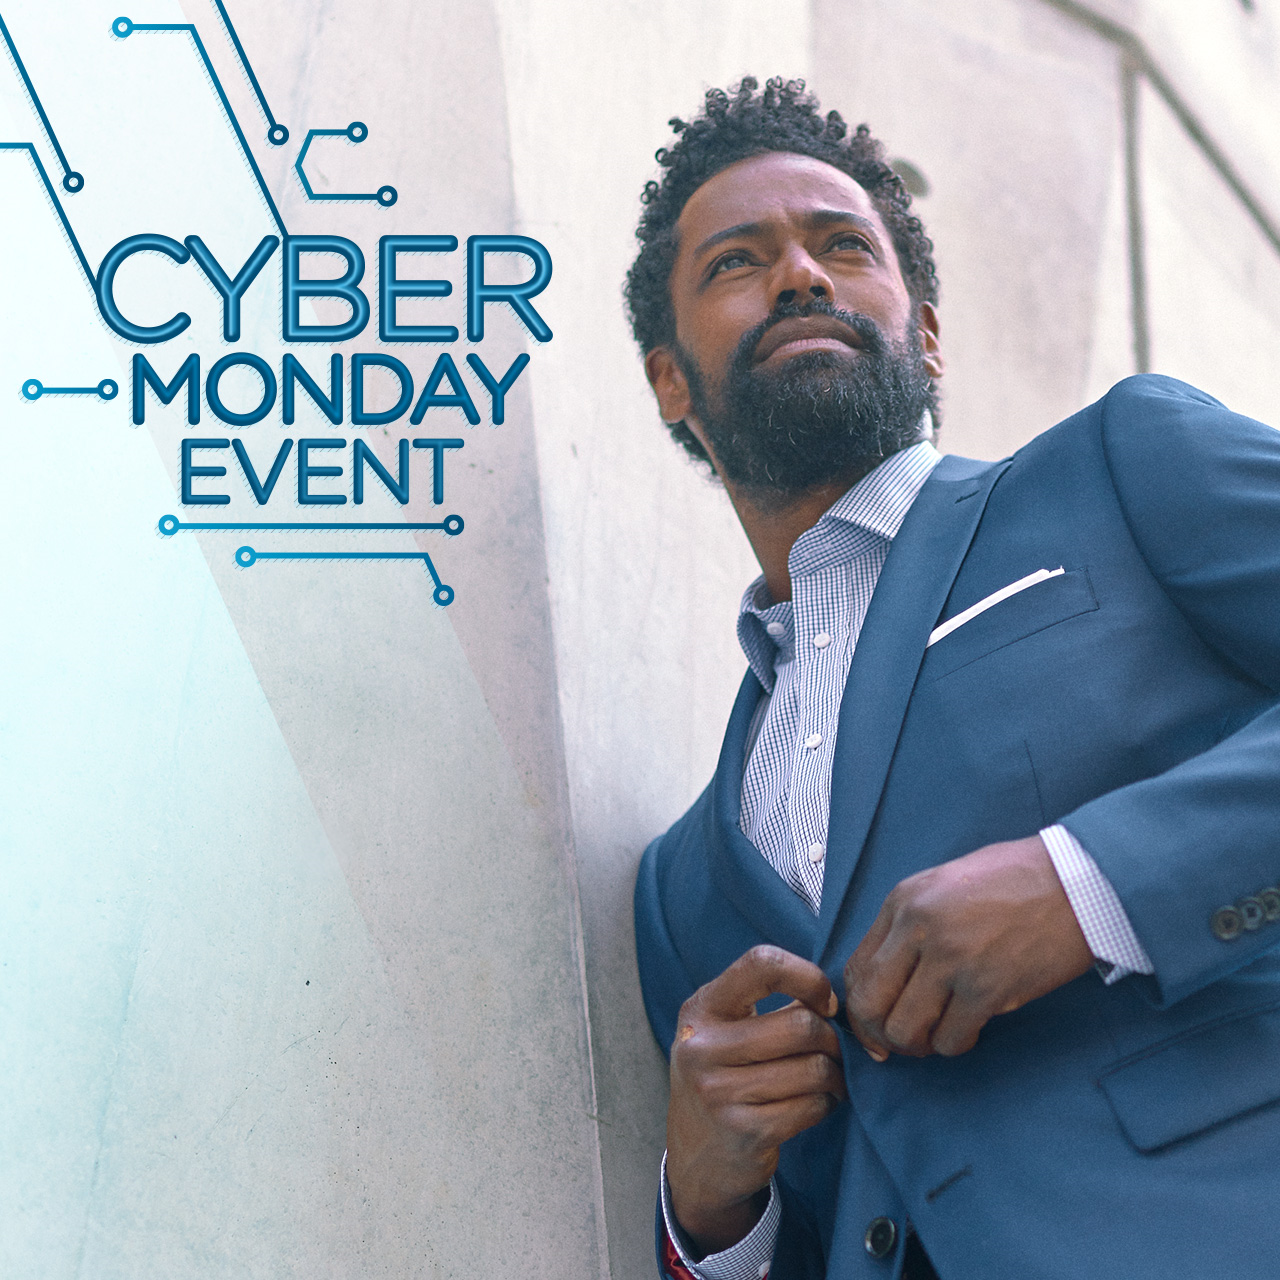 Indochino's Cyber Monday Sale is Now On!